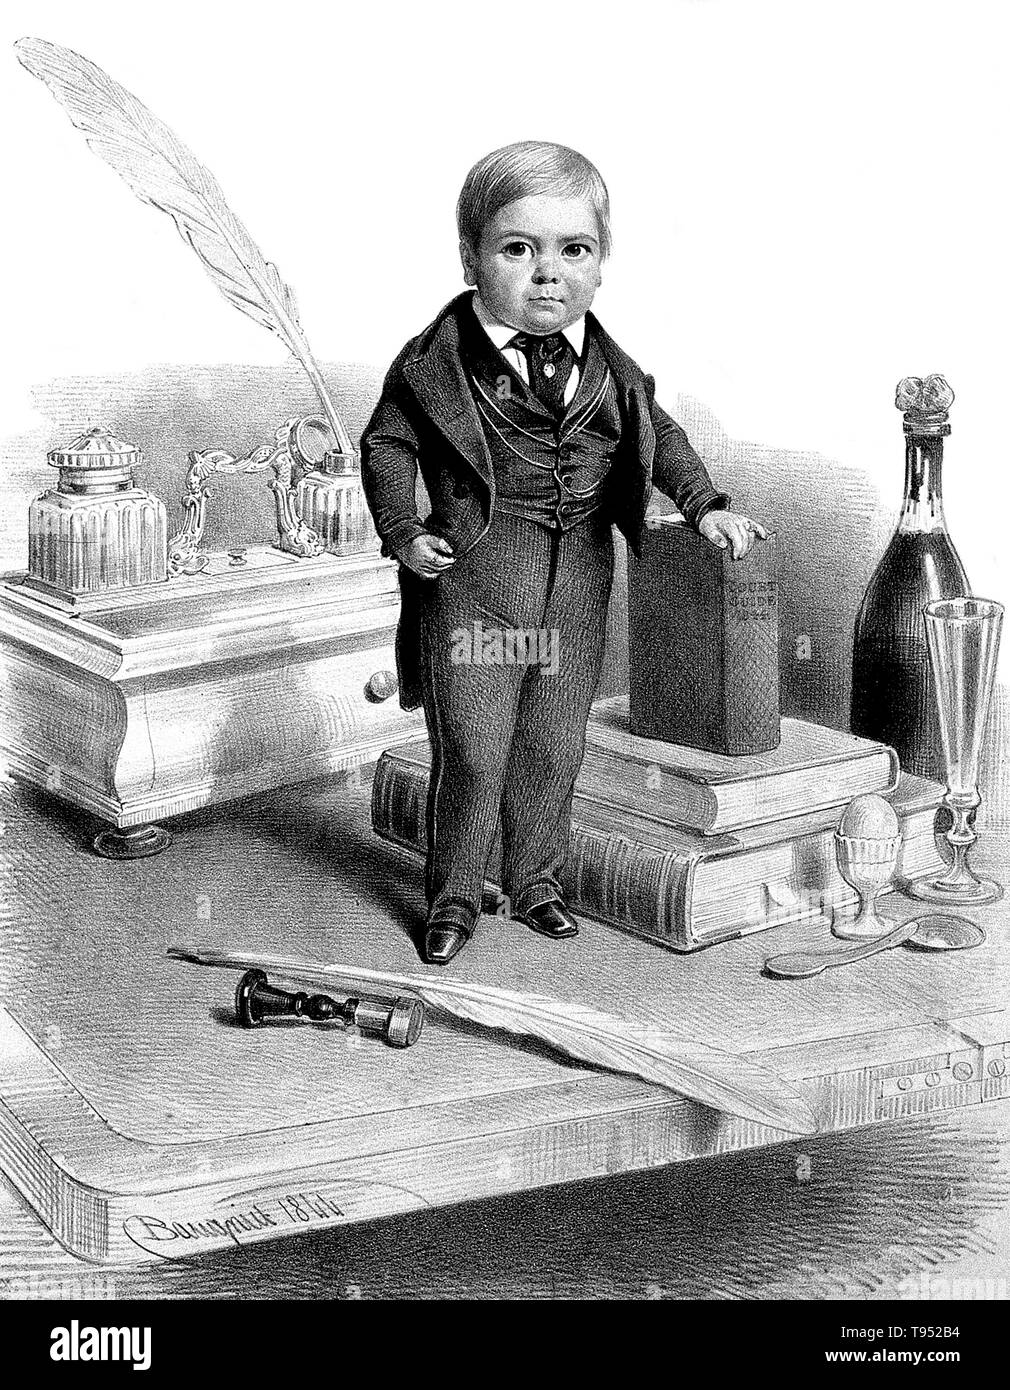 Stratton, age 12. Charles Sherwood Stratton (January 4, 1838 - July 15, 1883), 'General Tom Thumb', was an American dwarf performer. P.T. Barnum, a distant relative (half fifth cousin, twice removed), heard about Stratton and after contacting his parents, taught the boy how to sing, dance, mime, and impersonate famous people. Barnum took young Stratton on a tour of Europe, making him an international celebrity. His marriage with a little person, Lavinia Warren (October 31, 1842 - November 25, 1919), became front-page news. The wedding took place at Grace Episcopal Church and the wedding recept - Stock Image